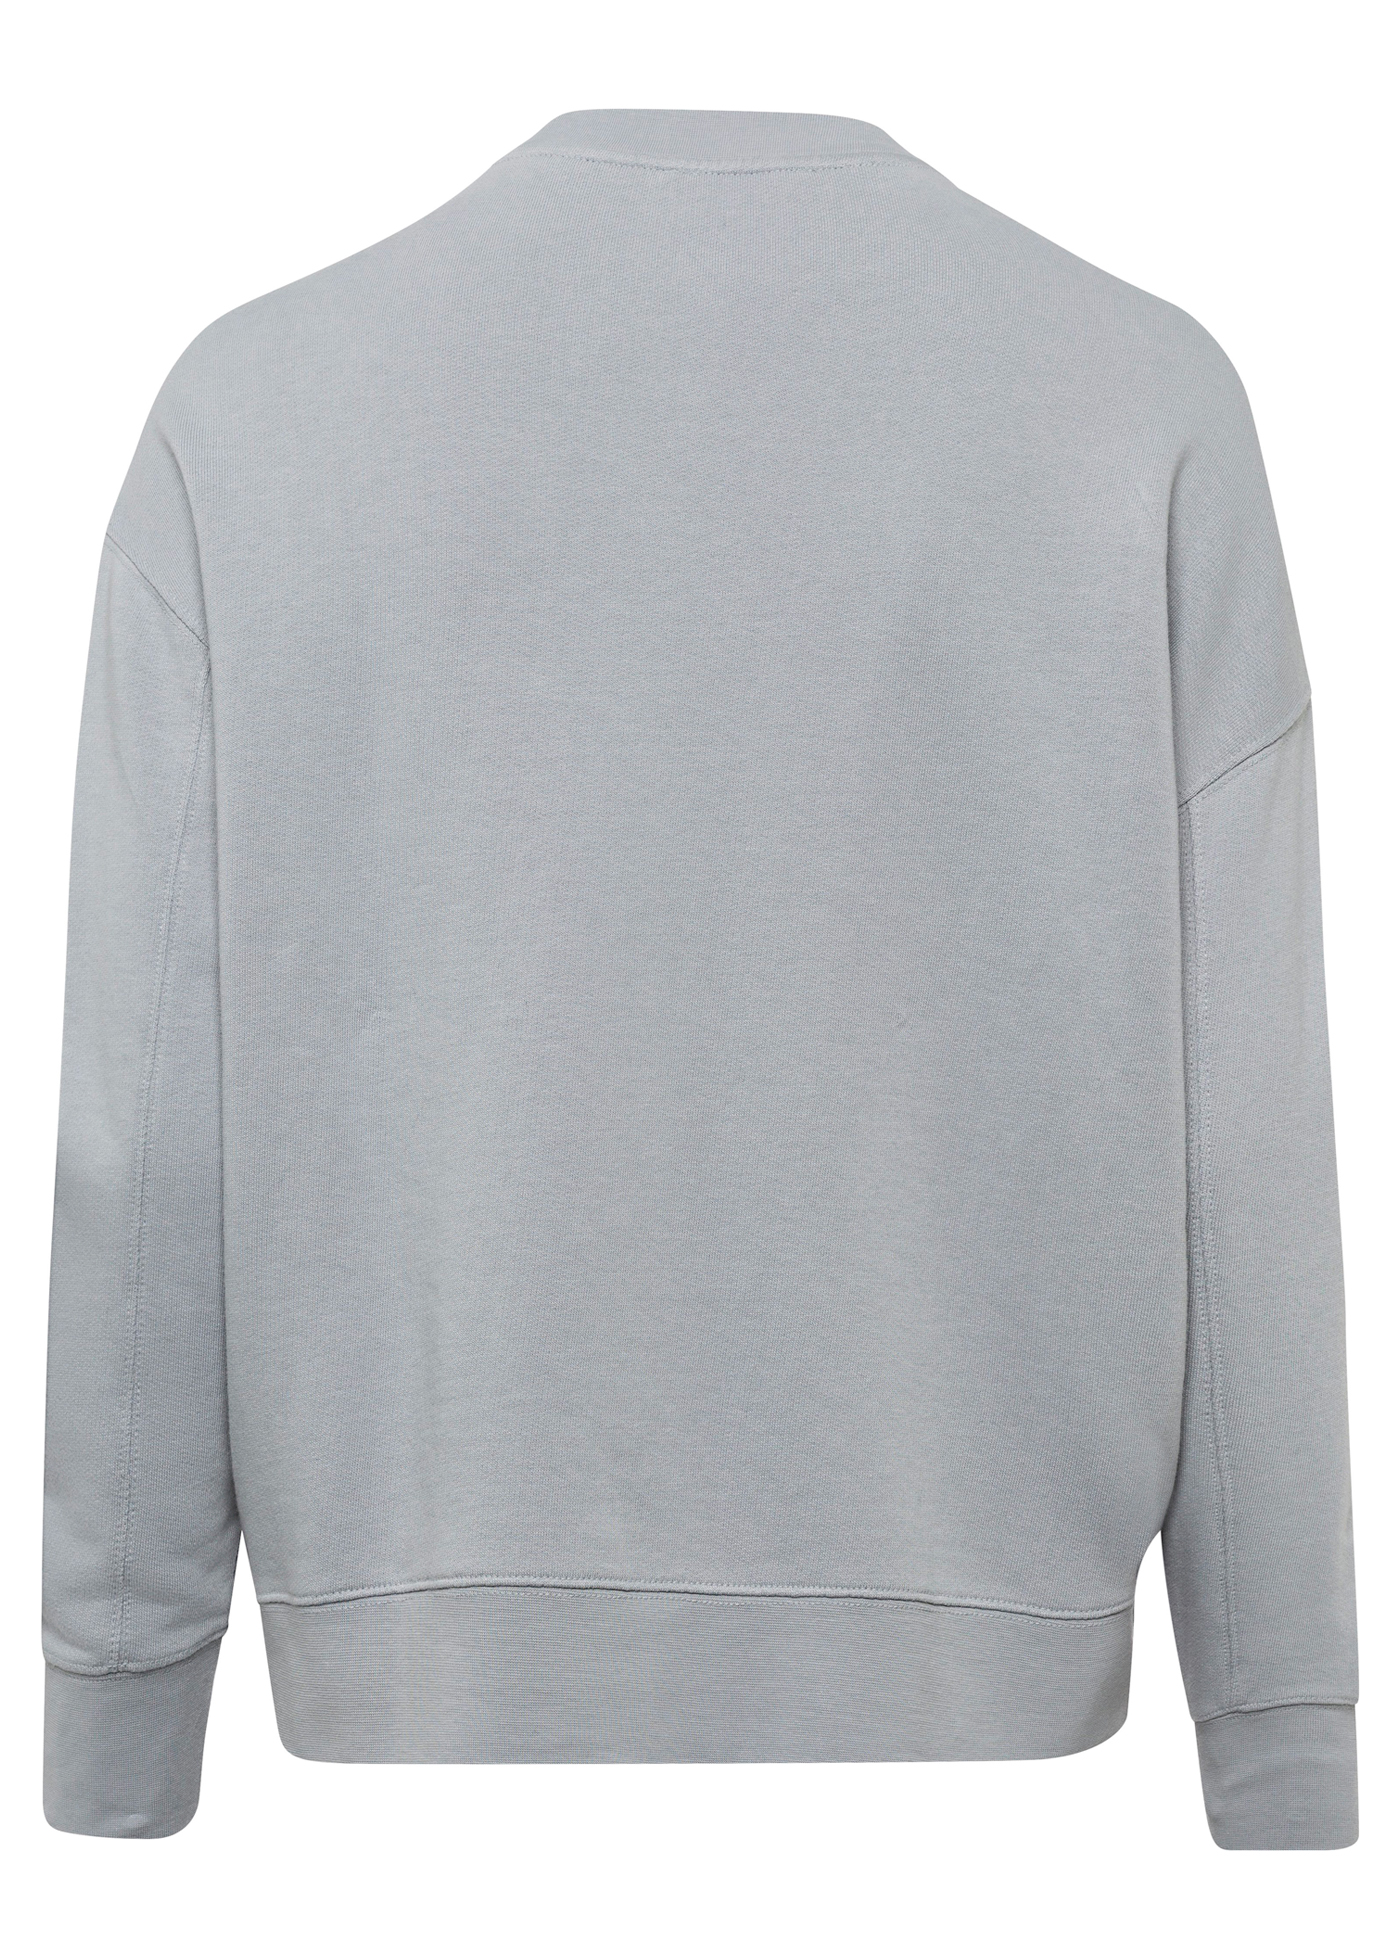 ESSENTIAL RELAXED PULLOVER / ESSENTIAL RELAXED PULLOVER image number 1